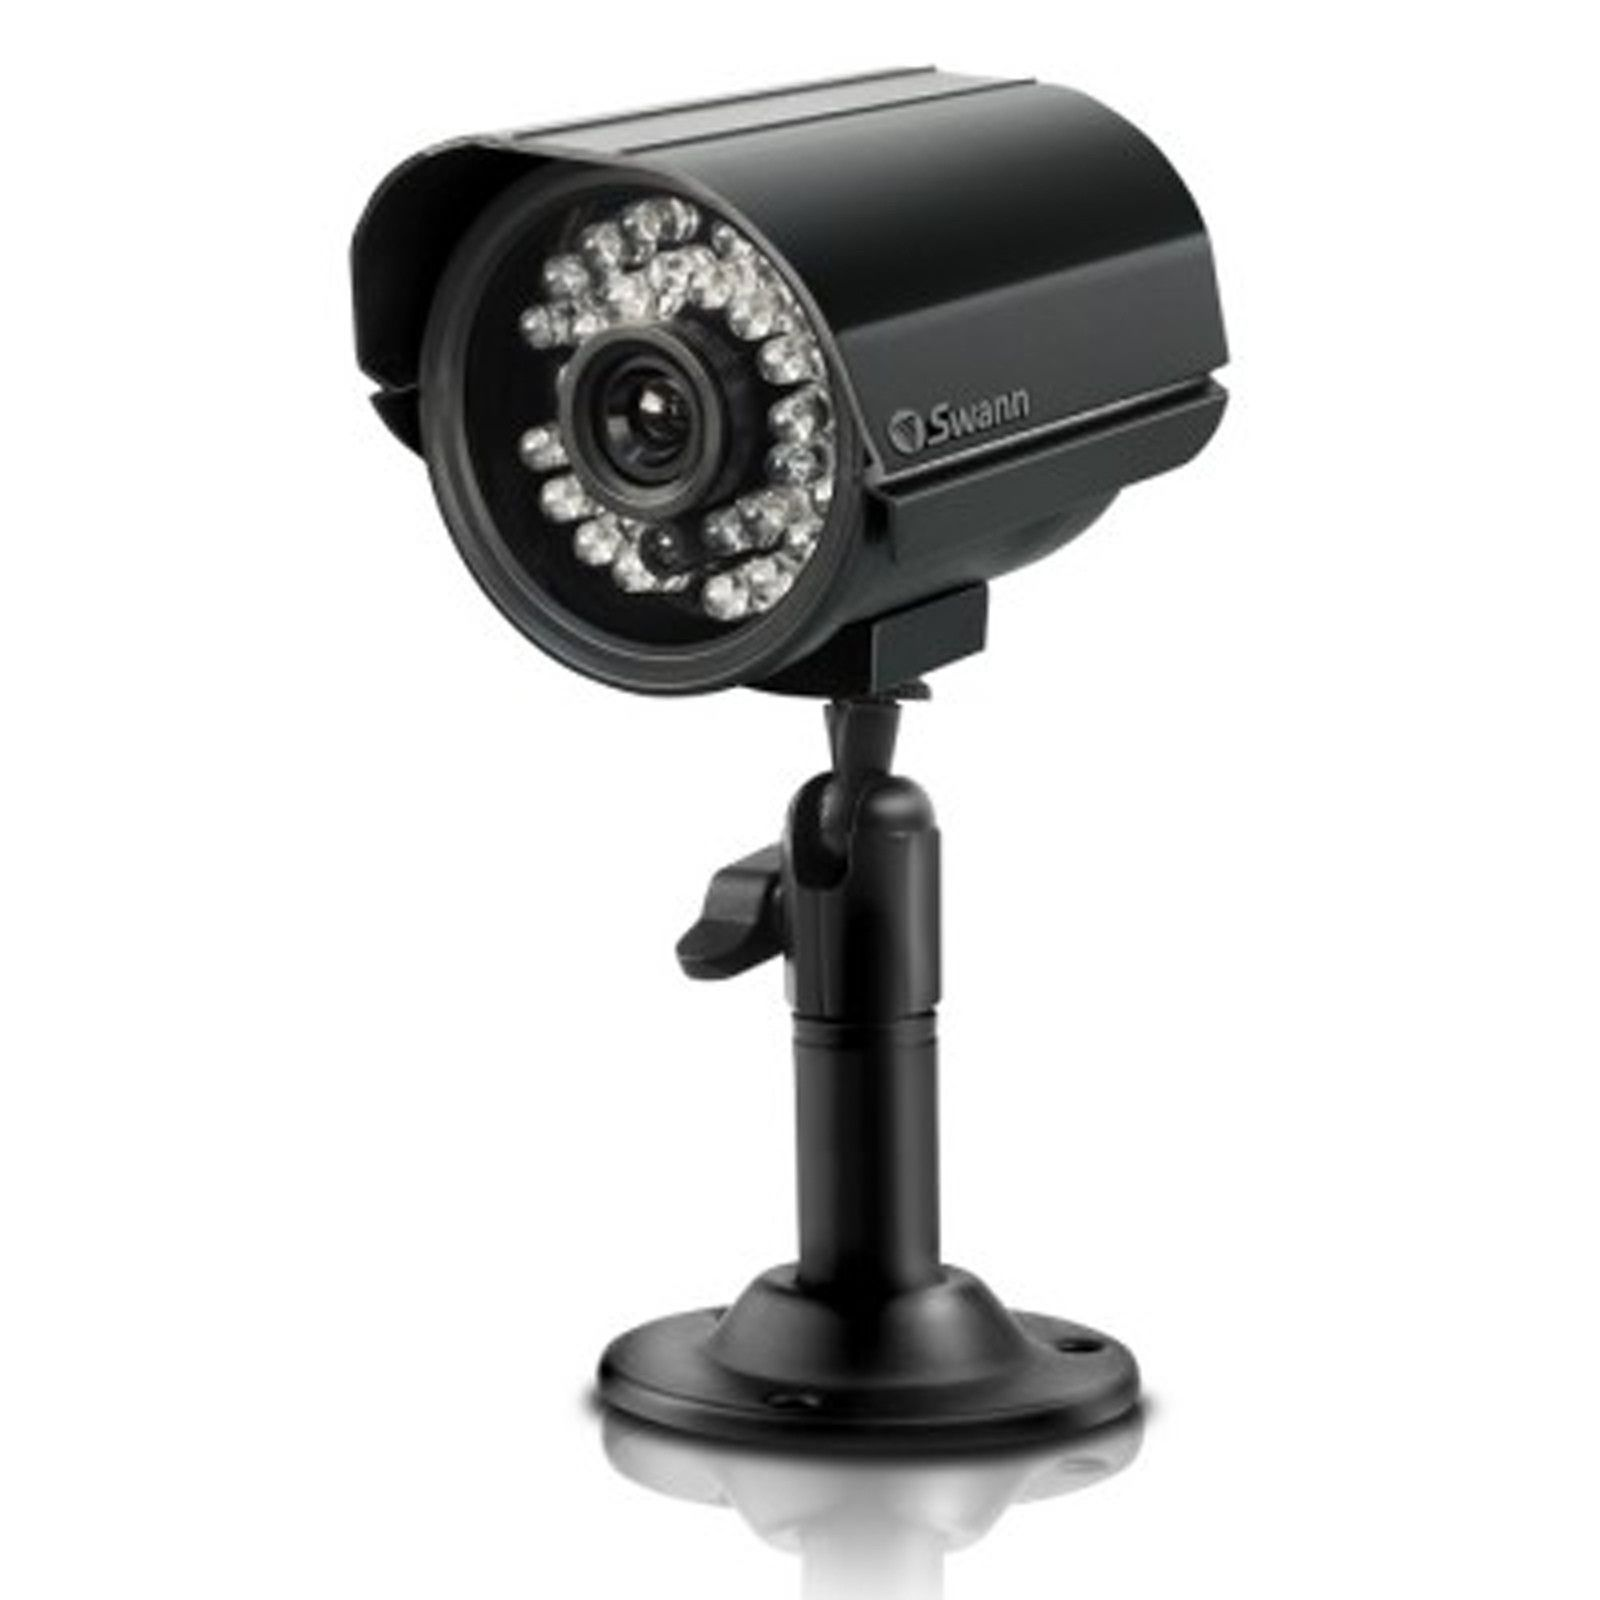 SWANN SWNVW-470CAM-US Wi-Fi NVR Extra Camera   Products   Pinterest ...